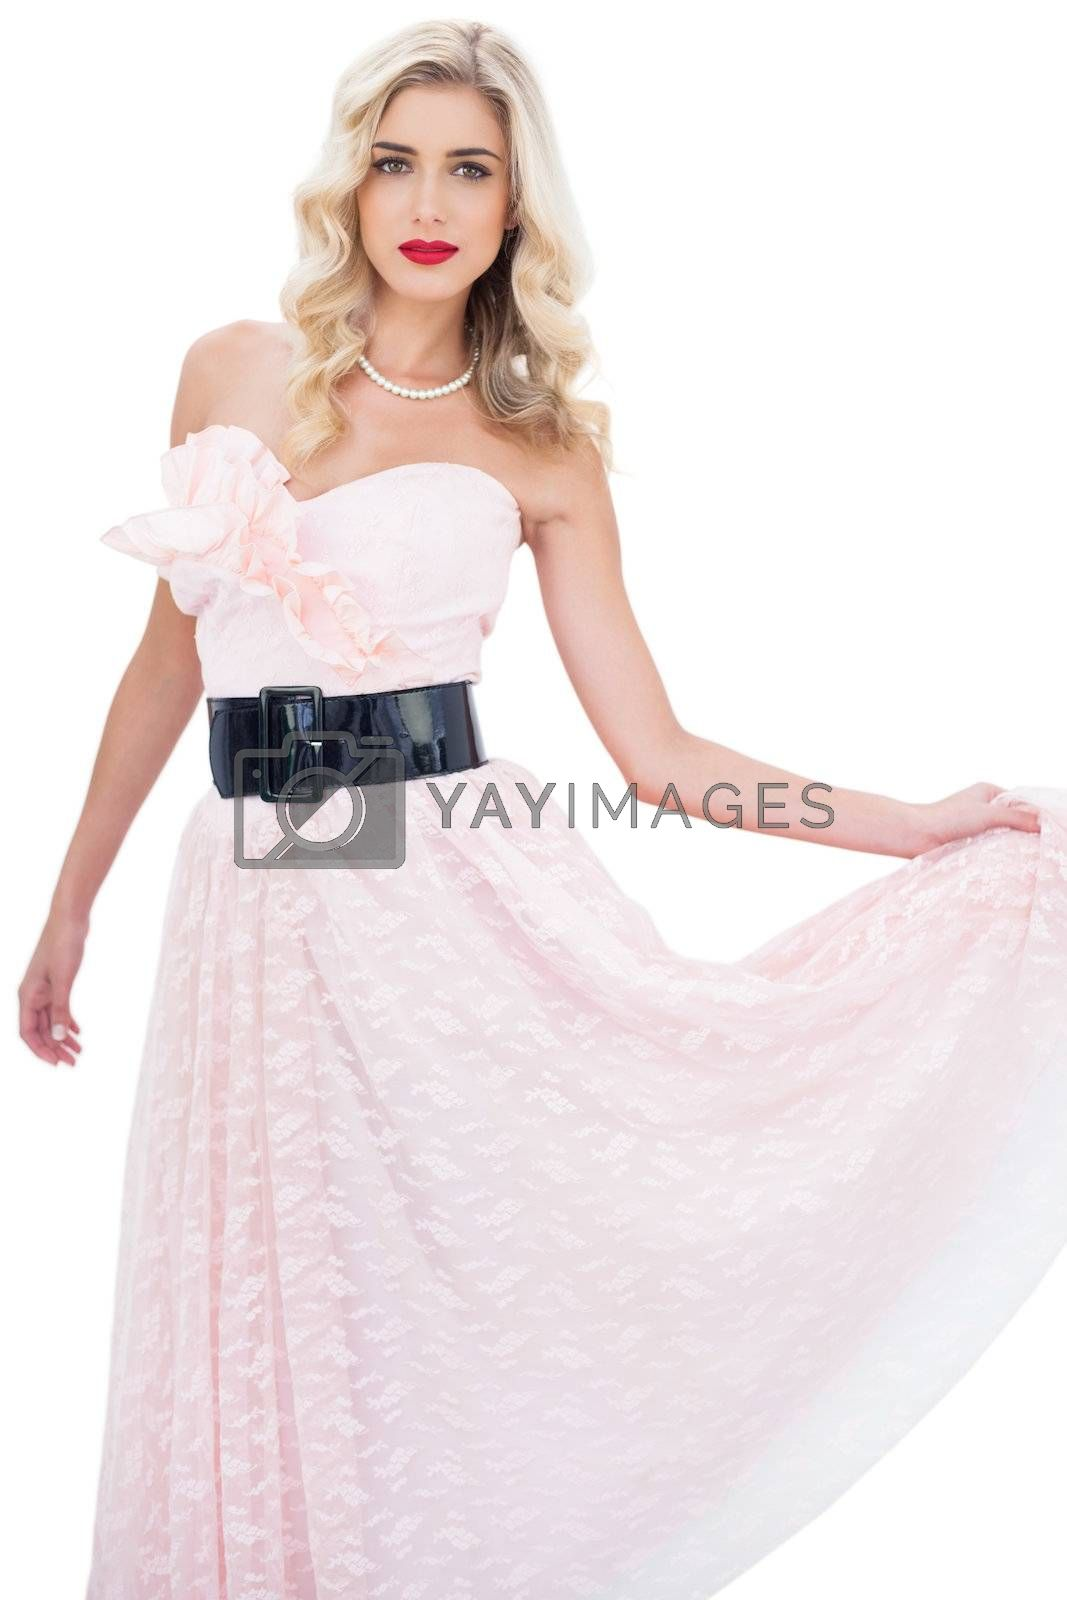 Stylish blonde model in pink dress posing holding her dress by Wavebreakmedia